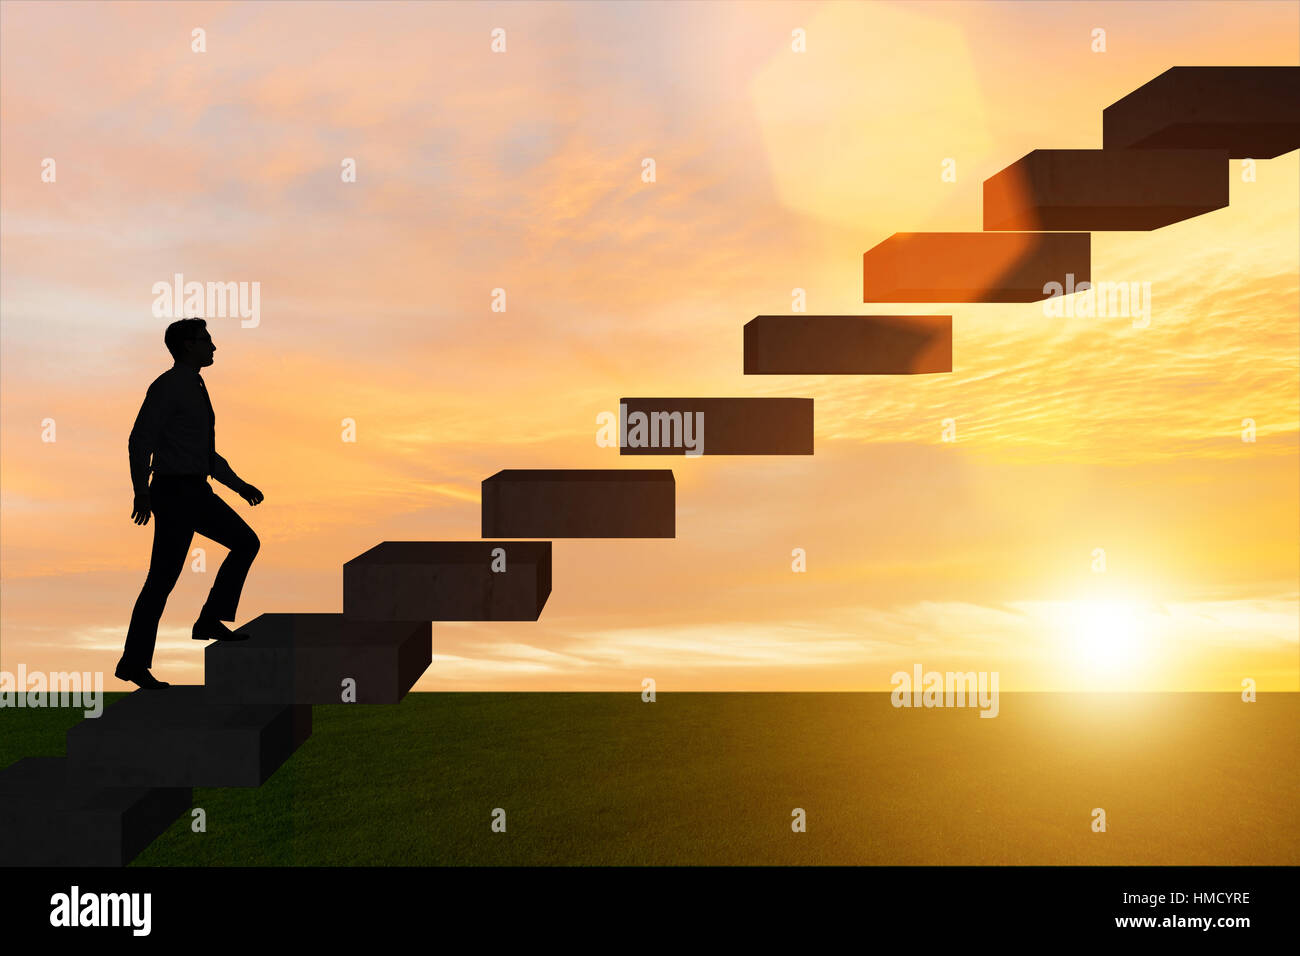 businessman in career promotion concept stairs stock photo businessman in career promotion concept stairs